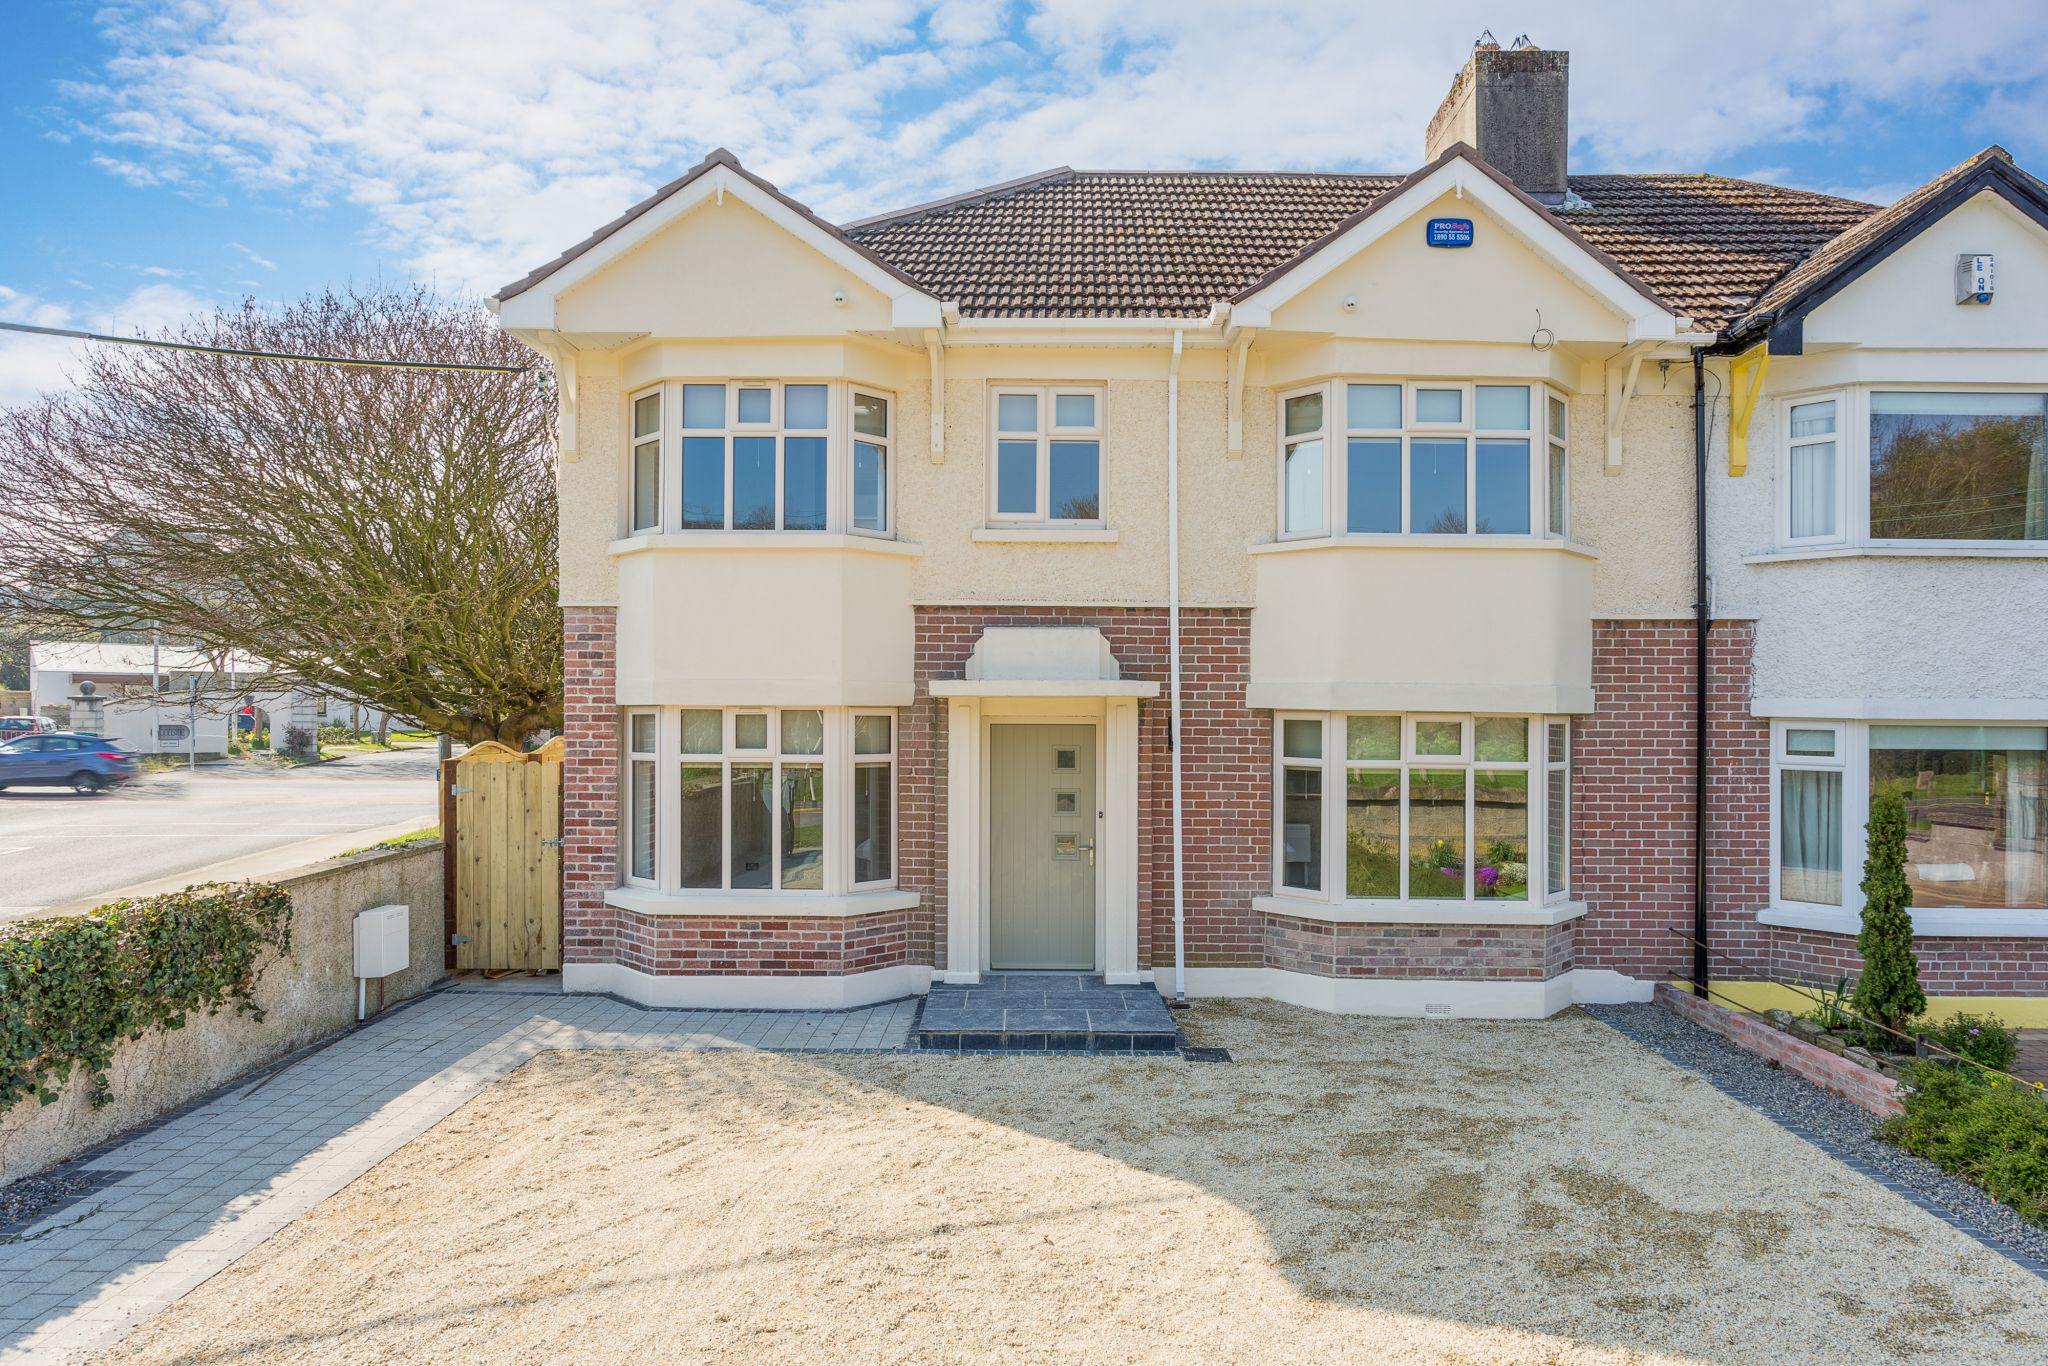 92 Lower Dodder Road, Rathfarnham, Dublin 14